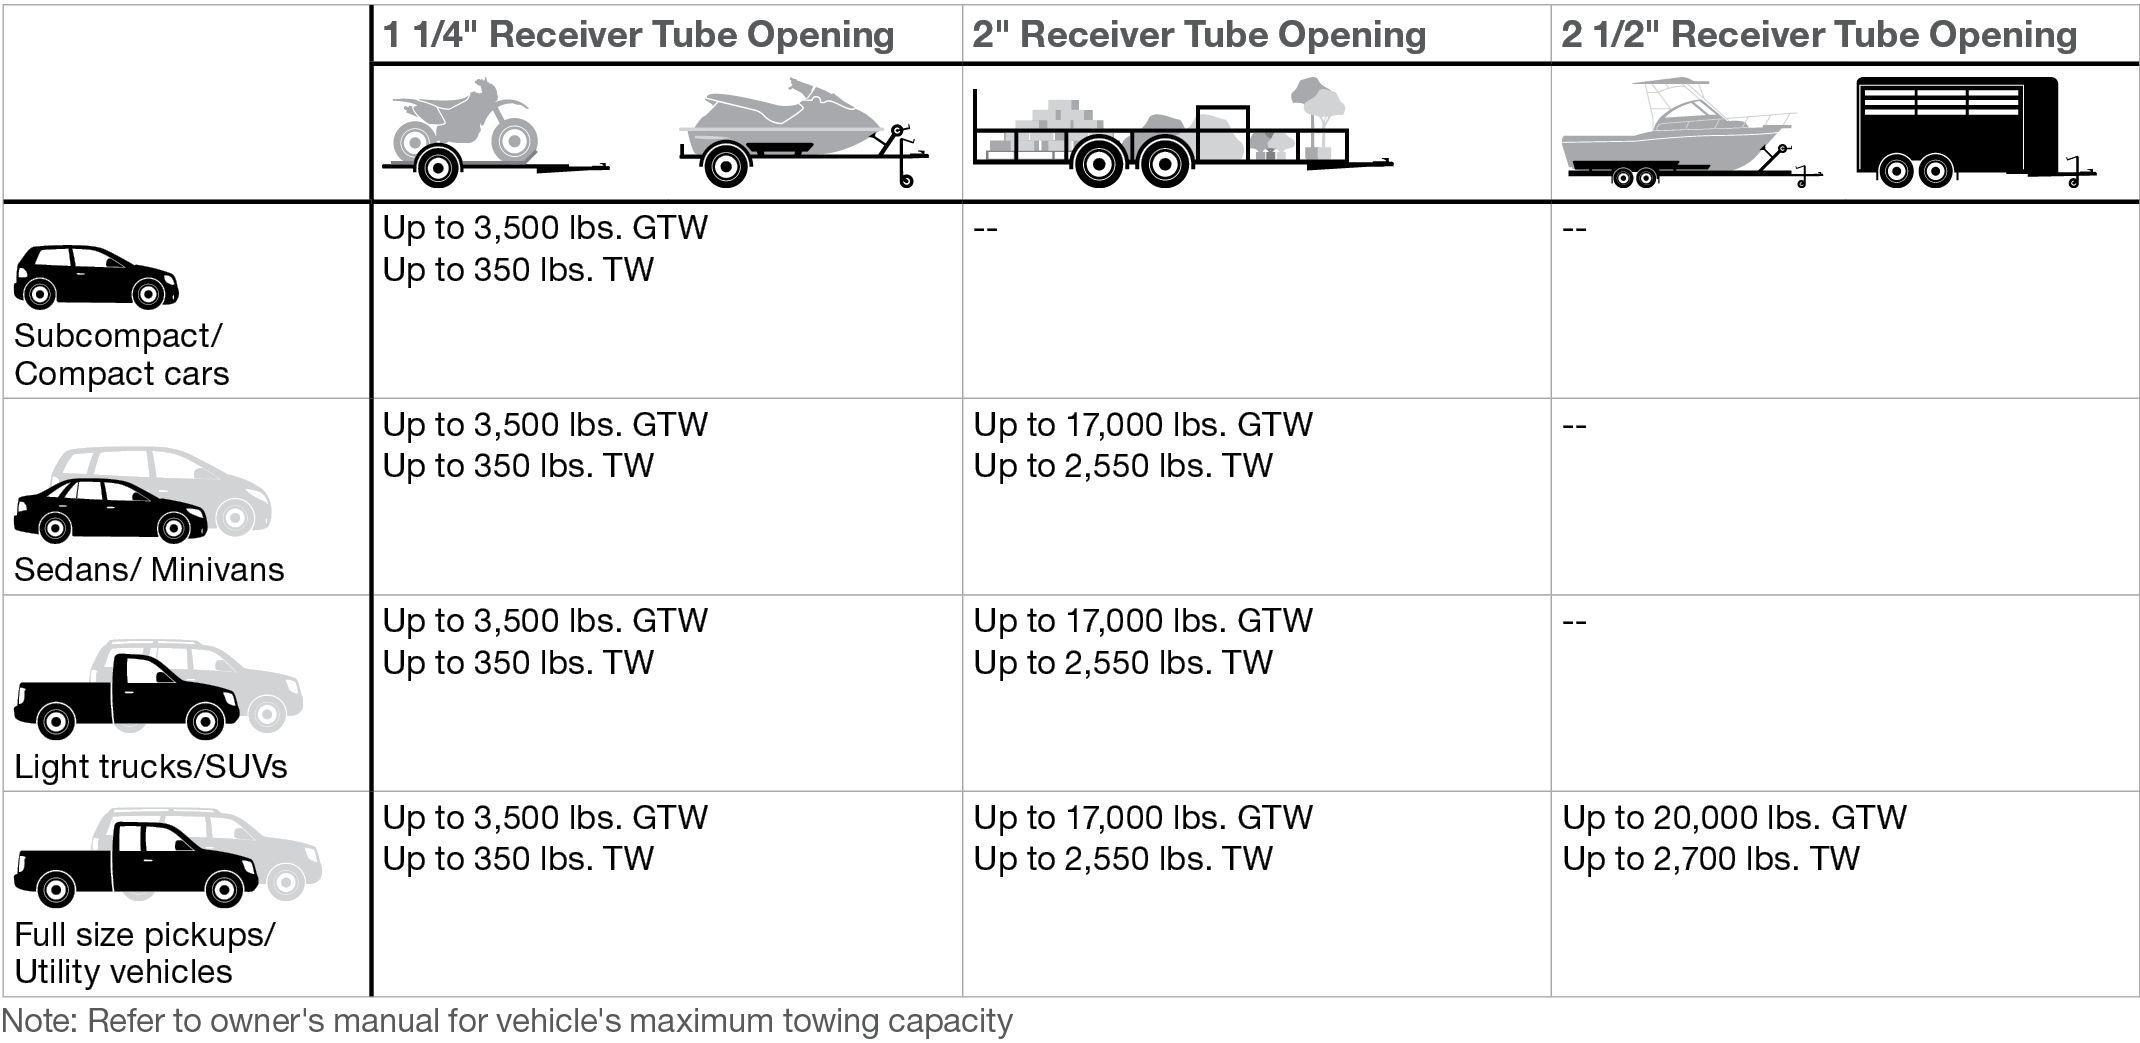 Determining Vehicle TowingCapacity & Trailer Weight